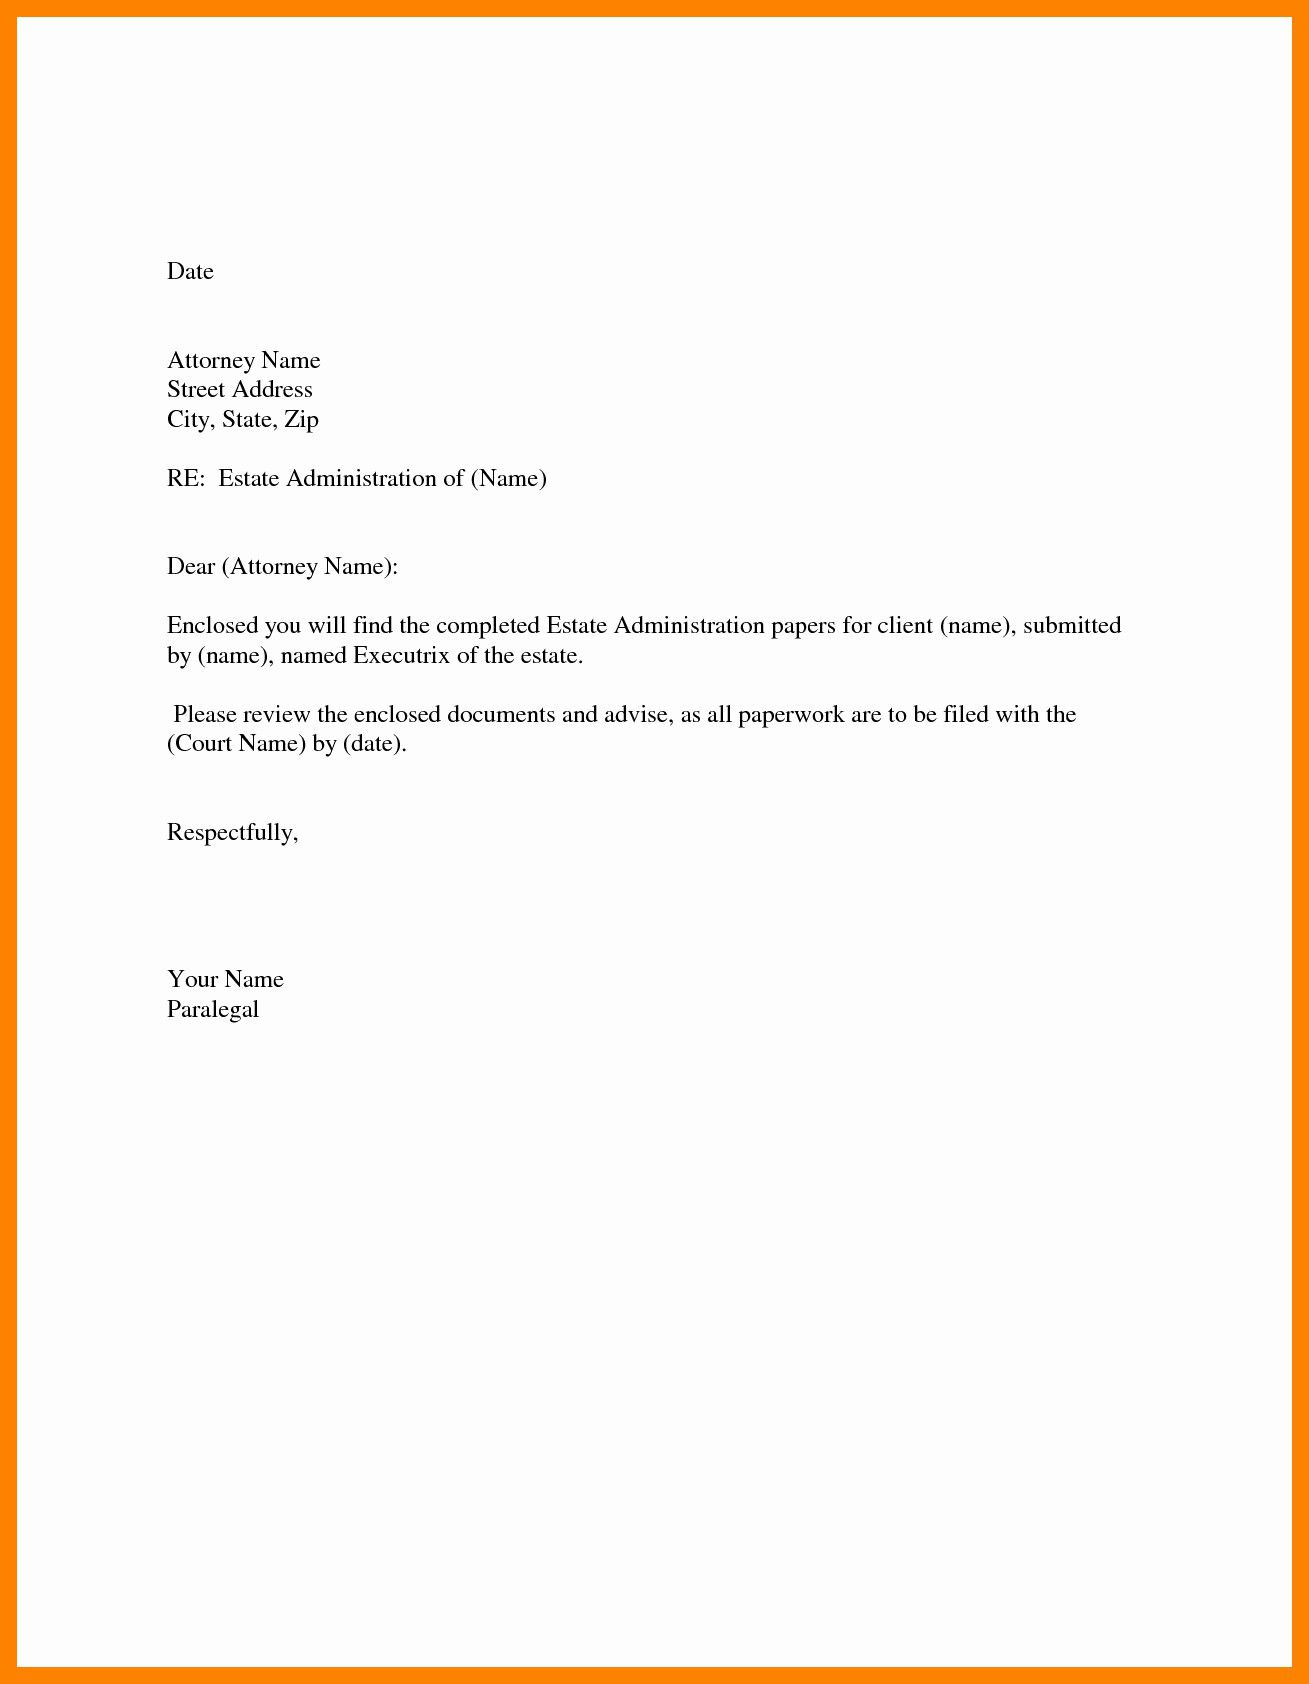 009 Fascinating Job Application Email Template High Def  Formal For Example Opportunitie SubjectFull